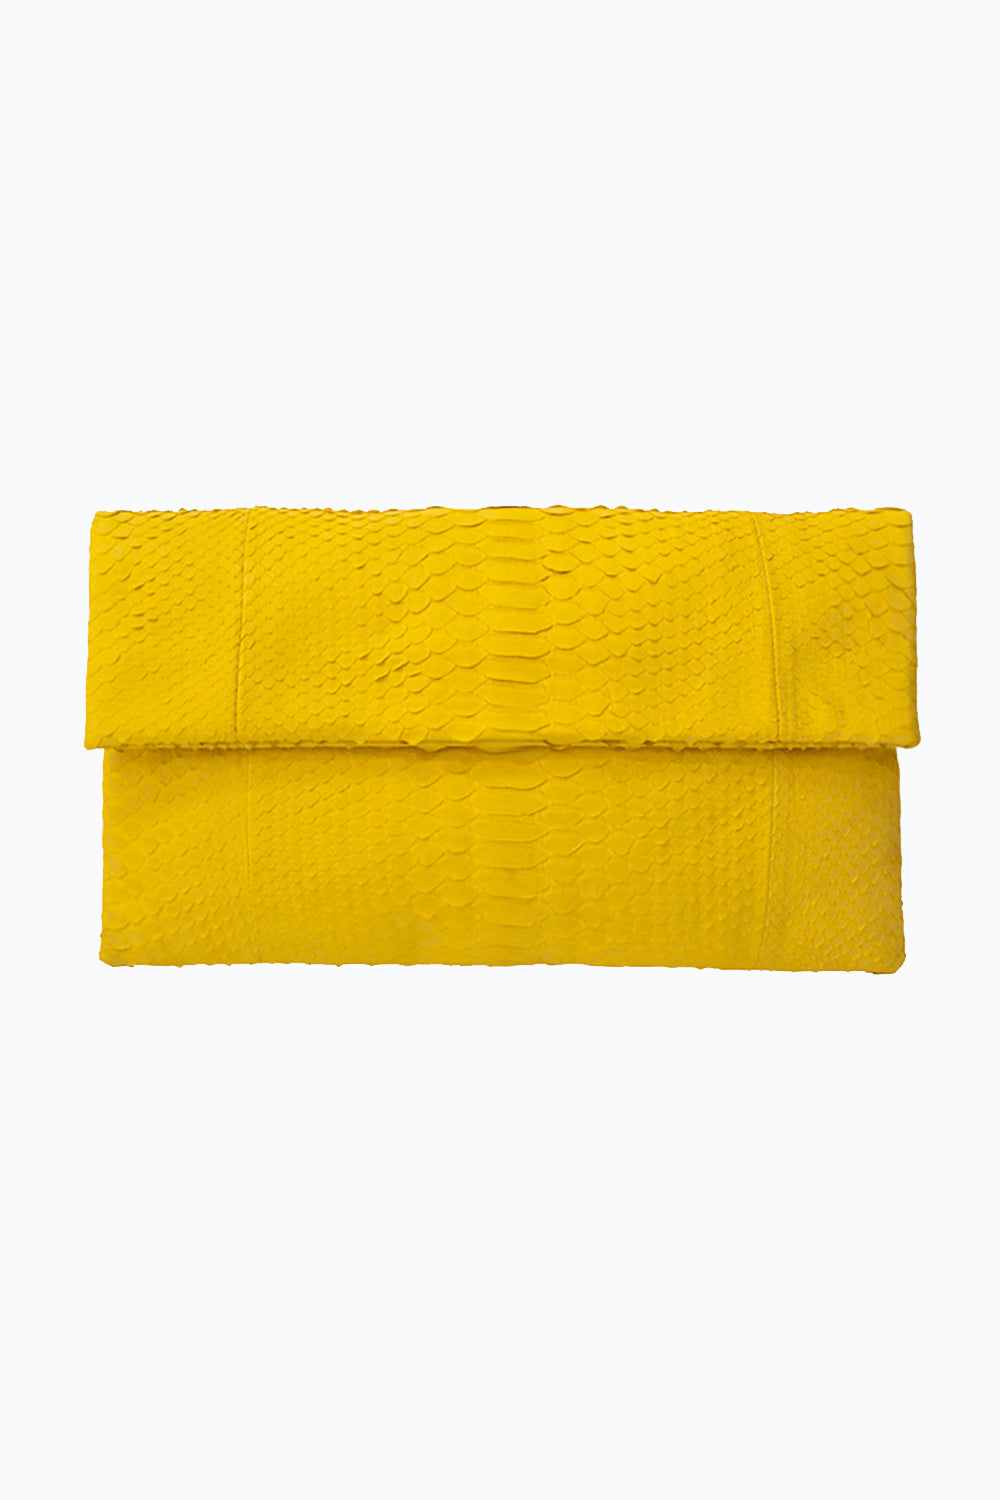 Primary New York Prime Python Clutch Yellow